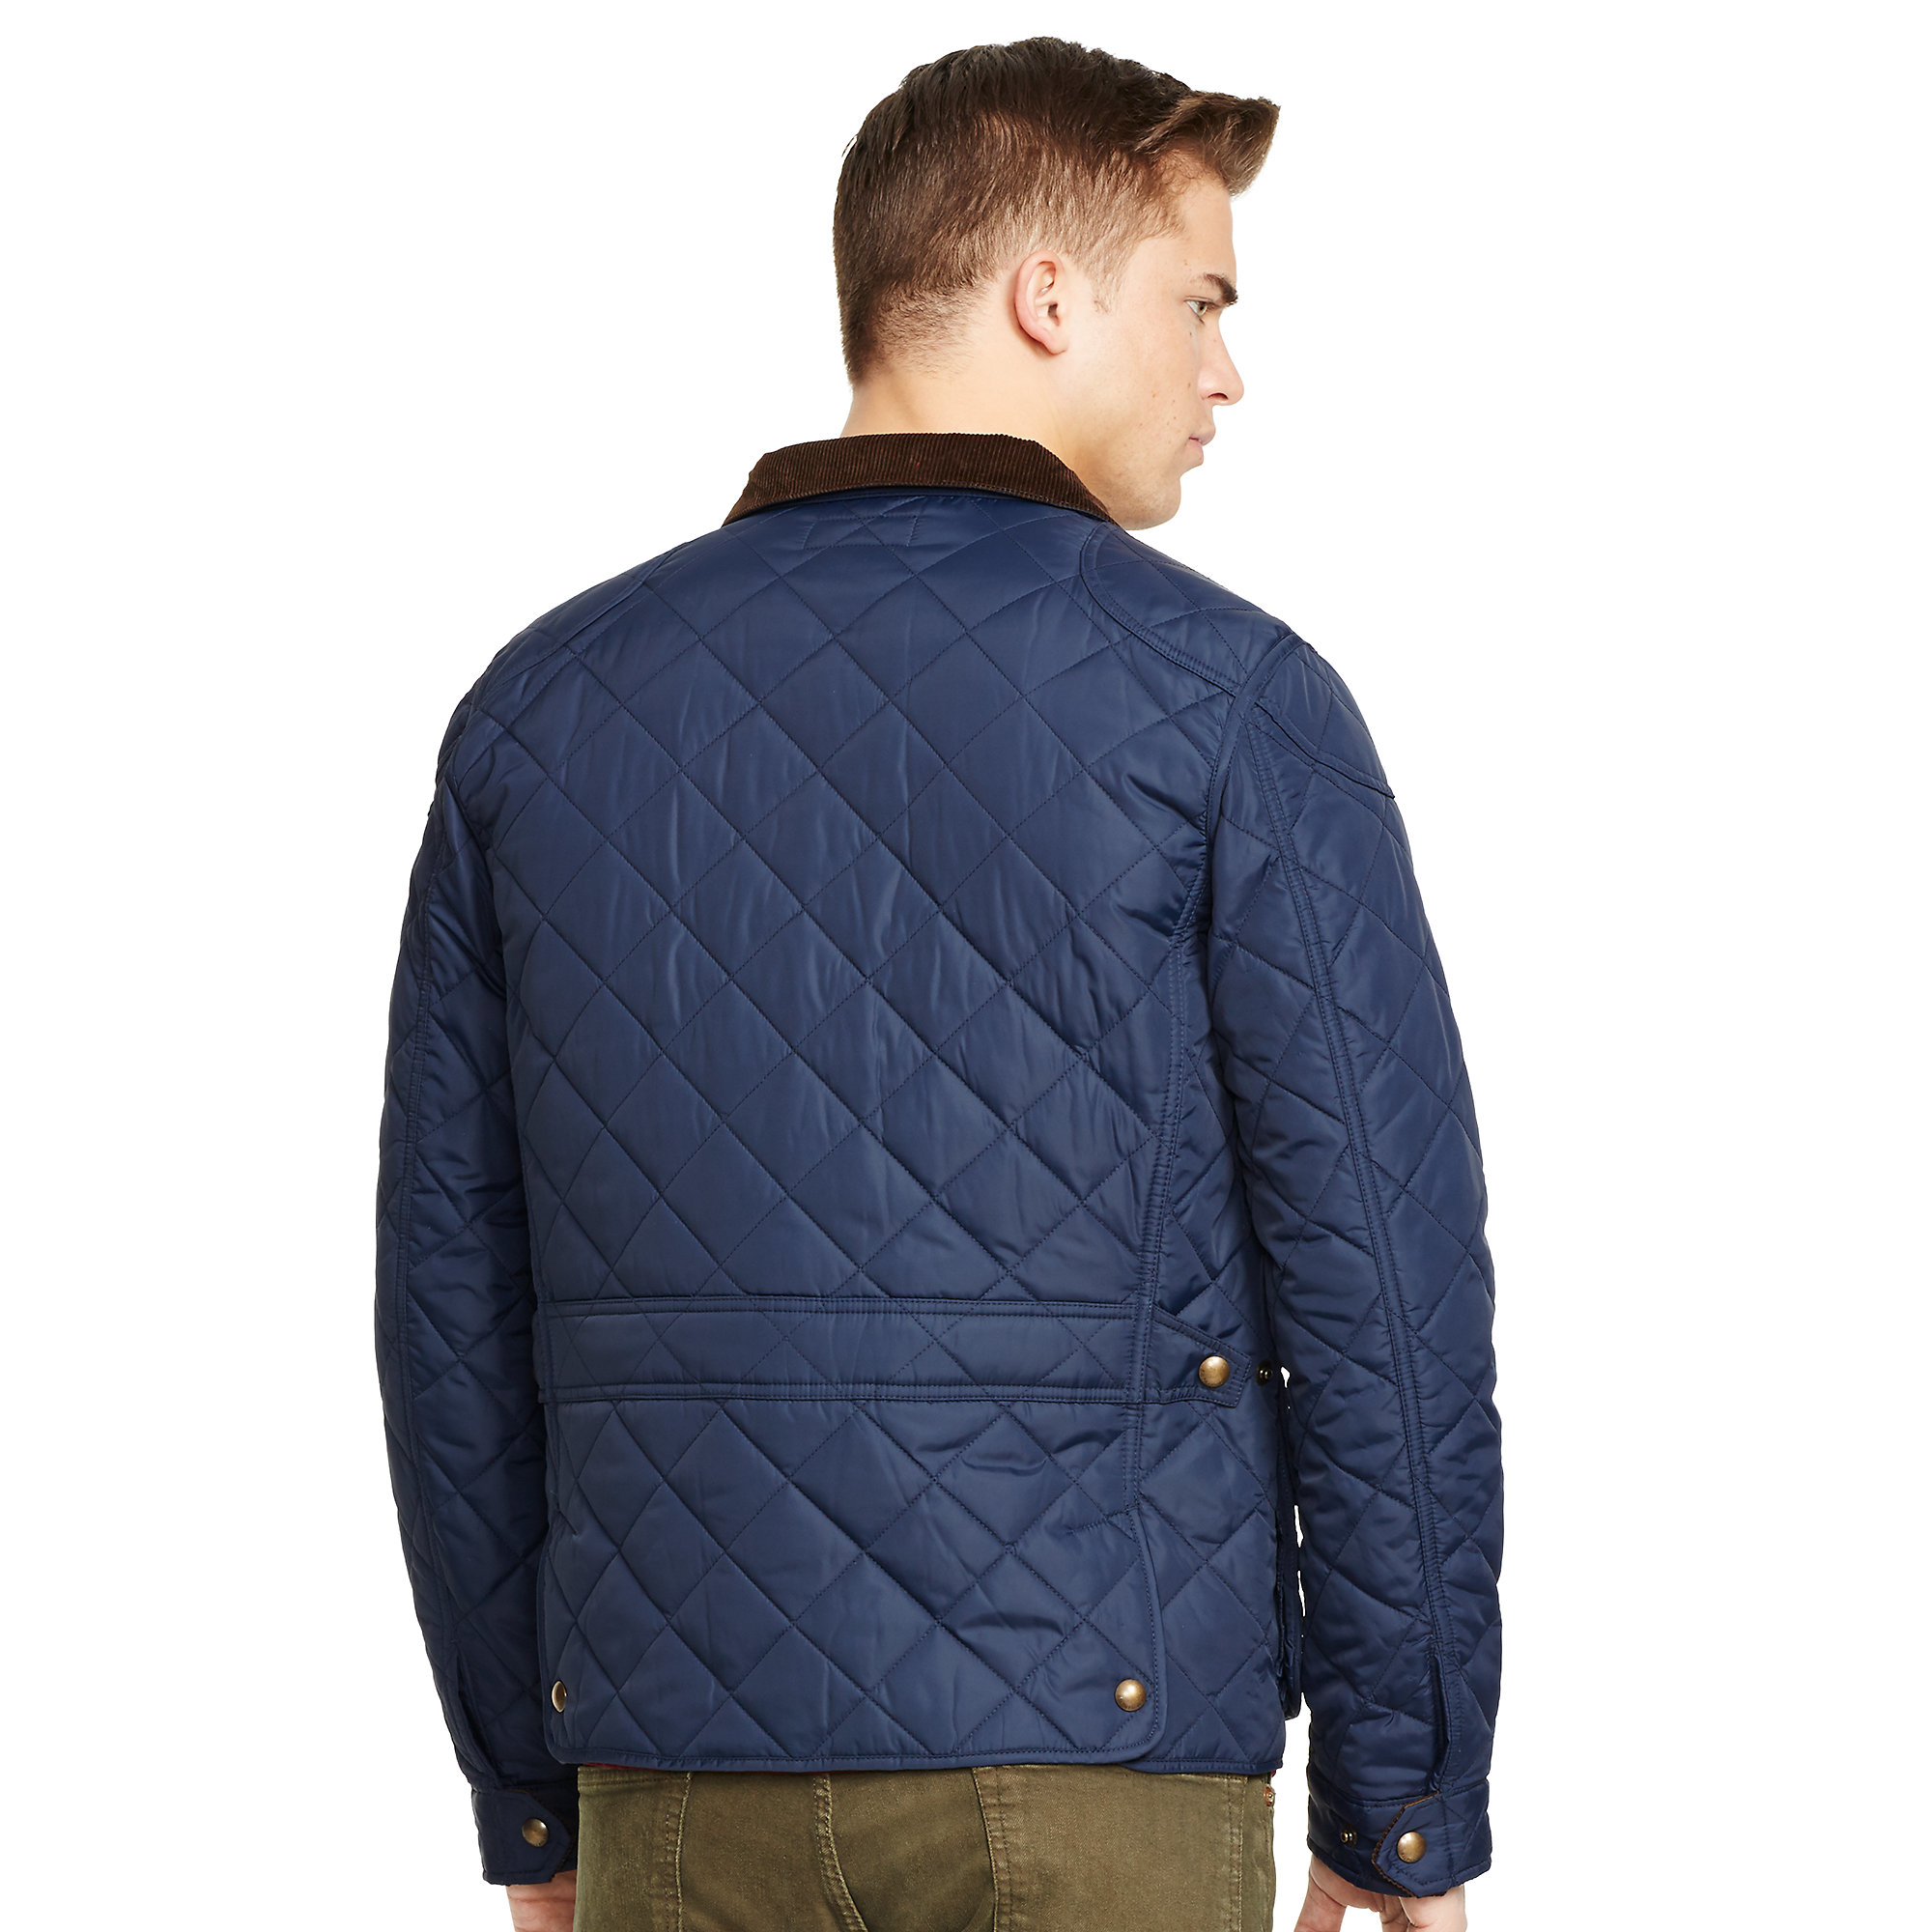 Lyst Polo Ralph Lauren Quilted Jacket In Blue For Men